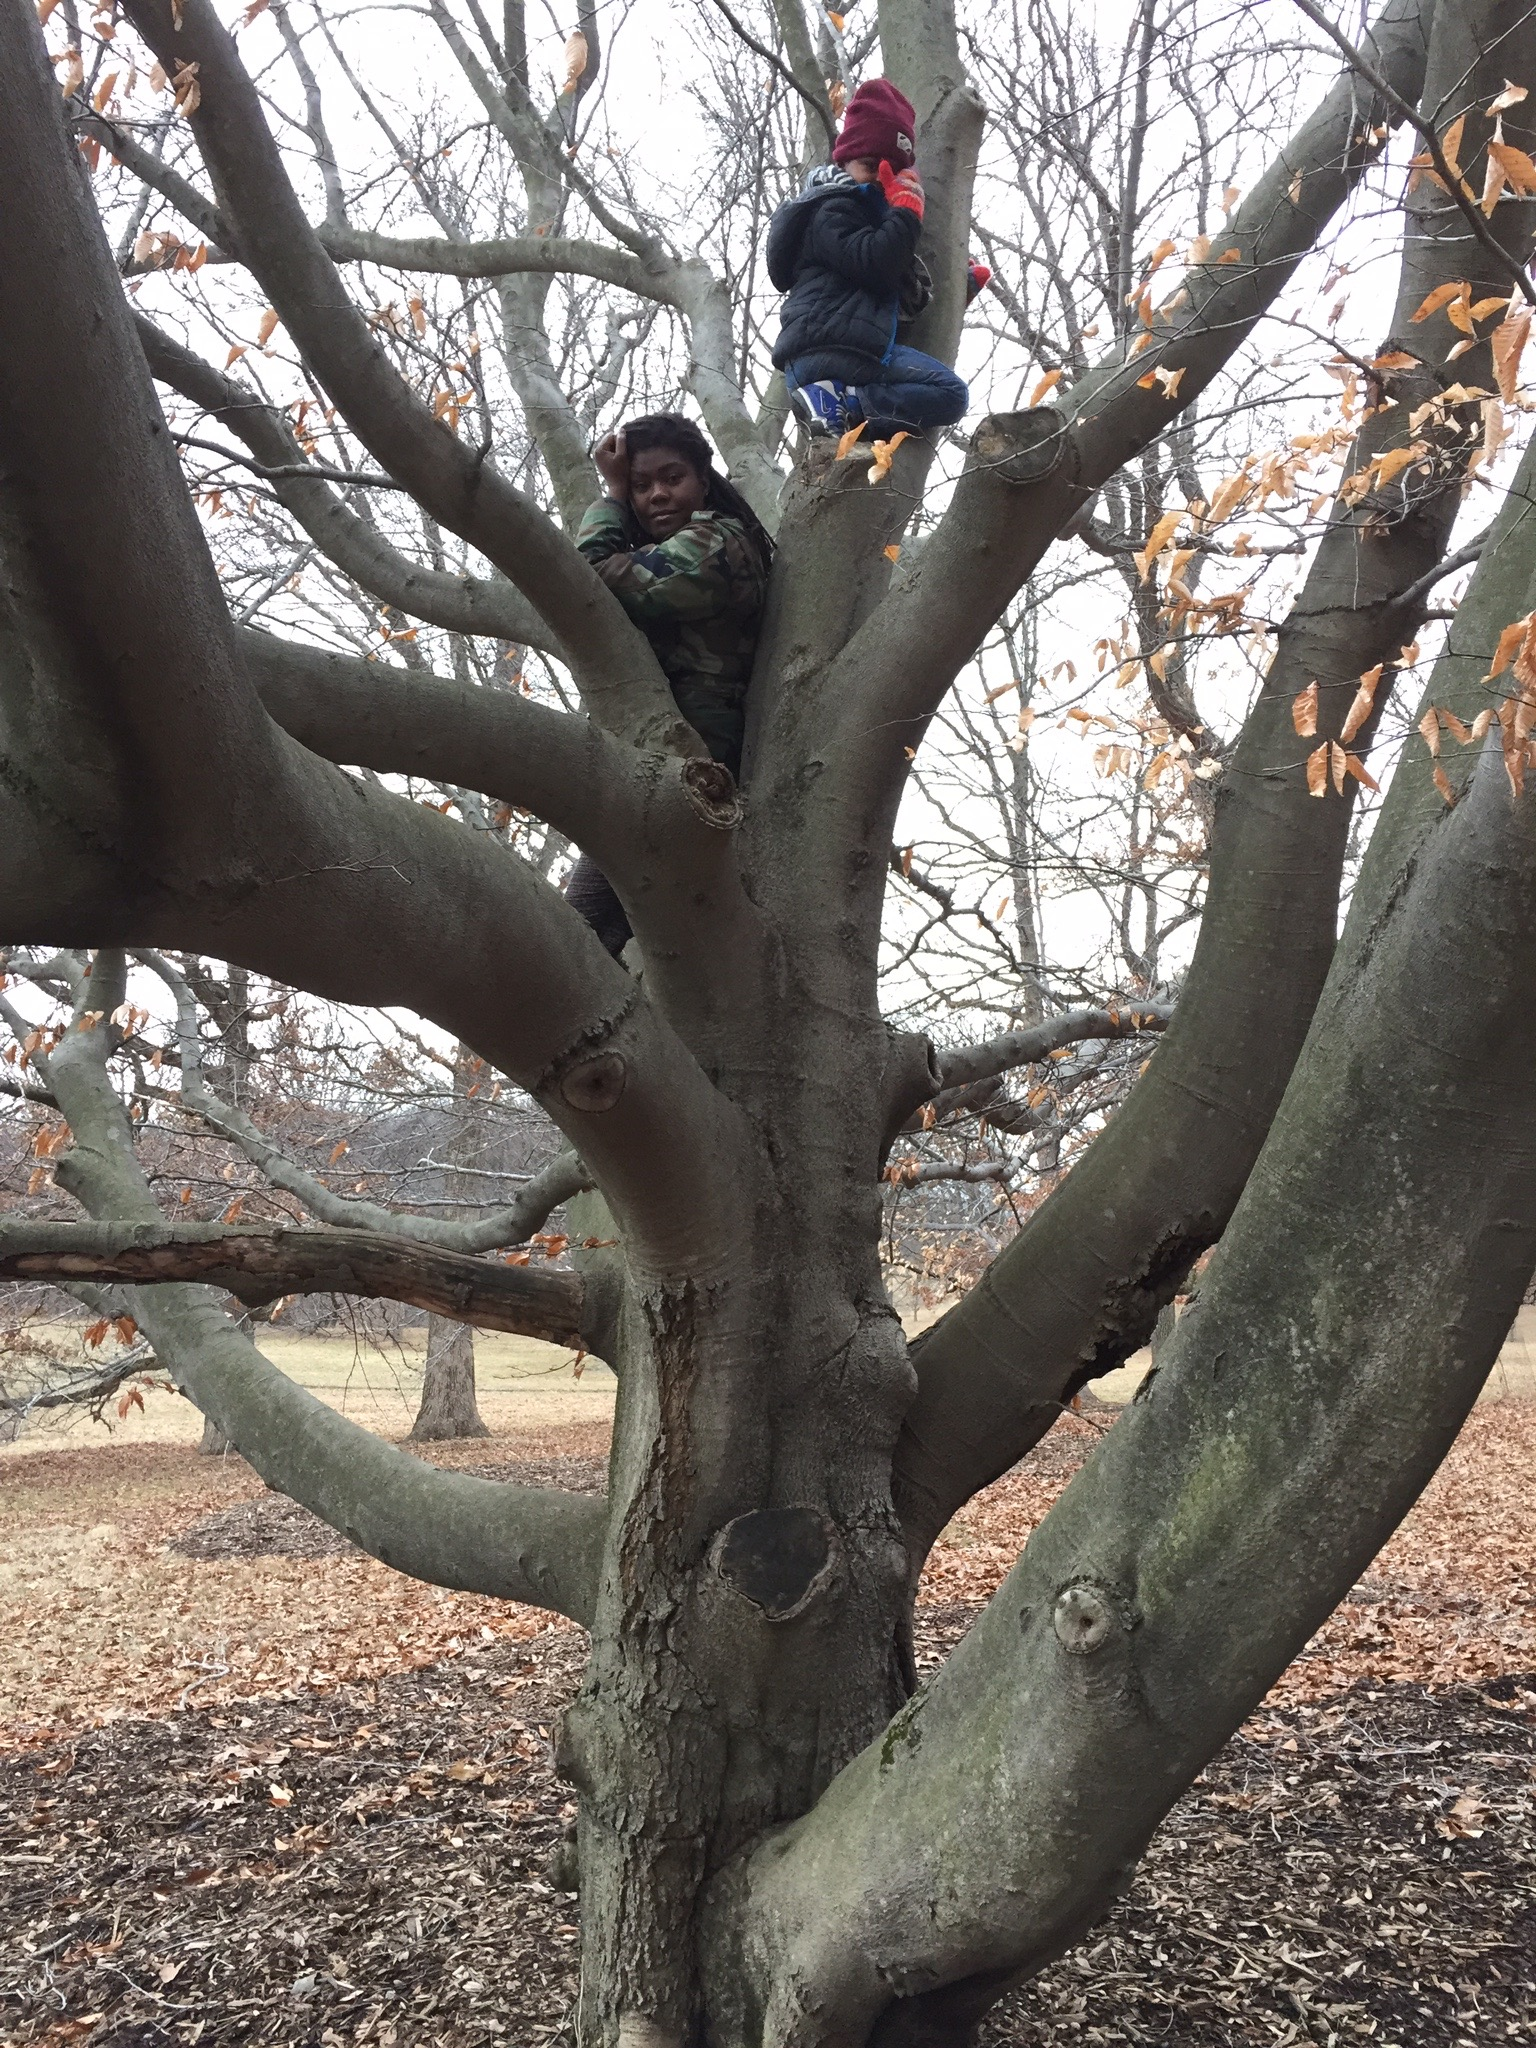 This was our first time climbing trees together. He was absolutely shocked to find out that it is actually something I did VERY often as a kid and I still got it.